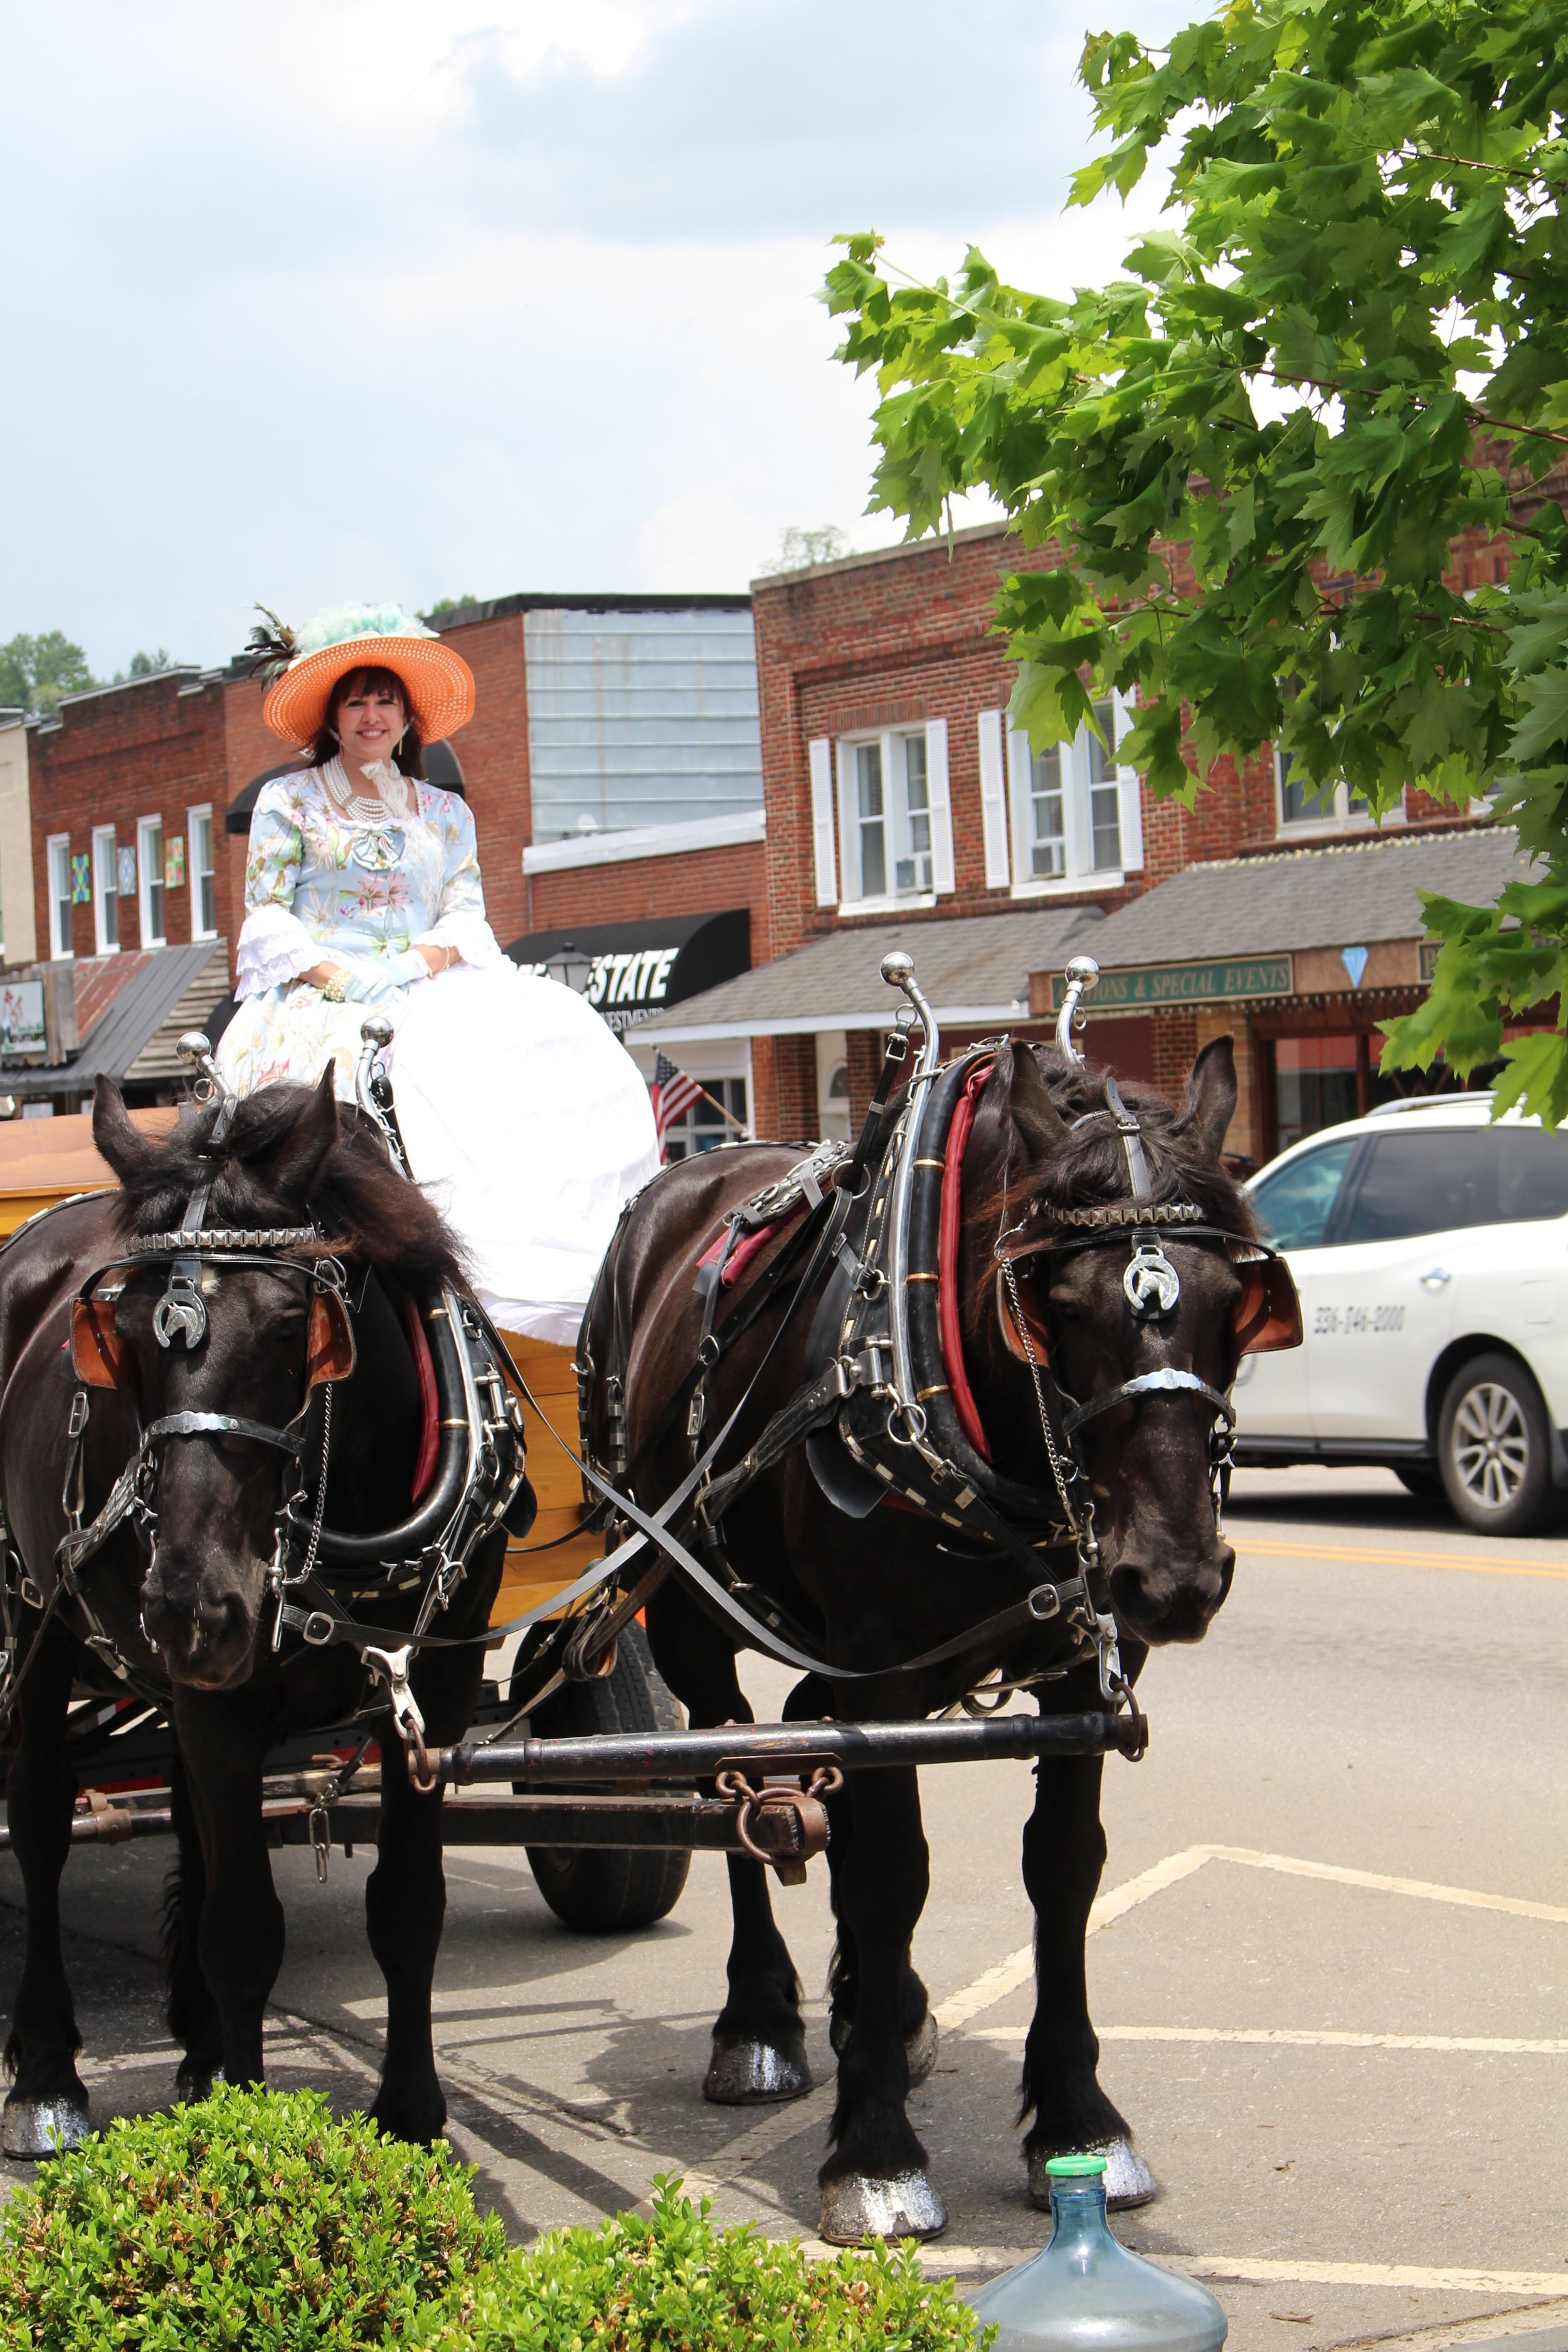 You can even go for a carriage ride in West Jefferson NC